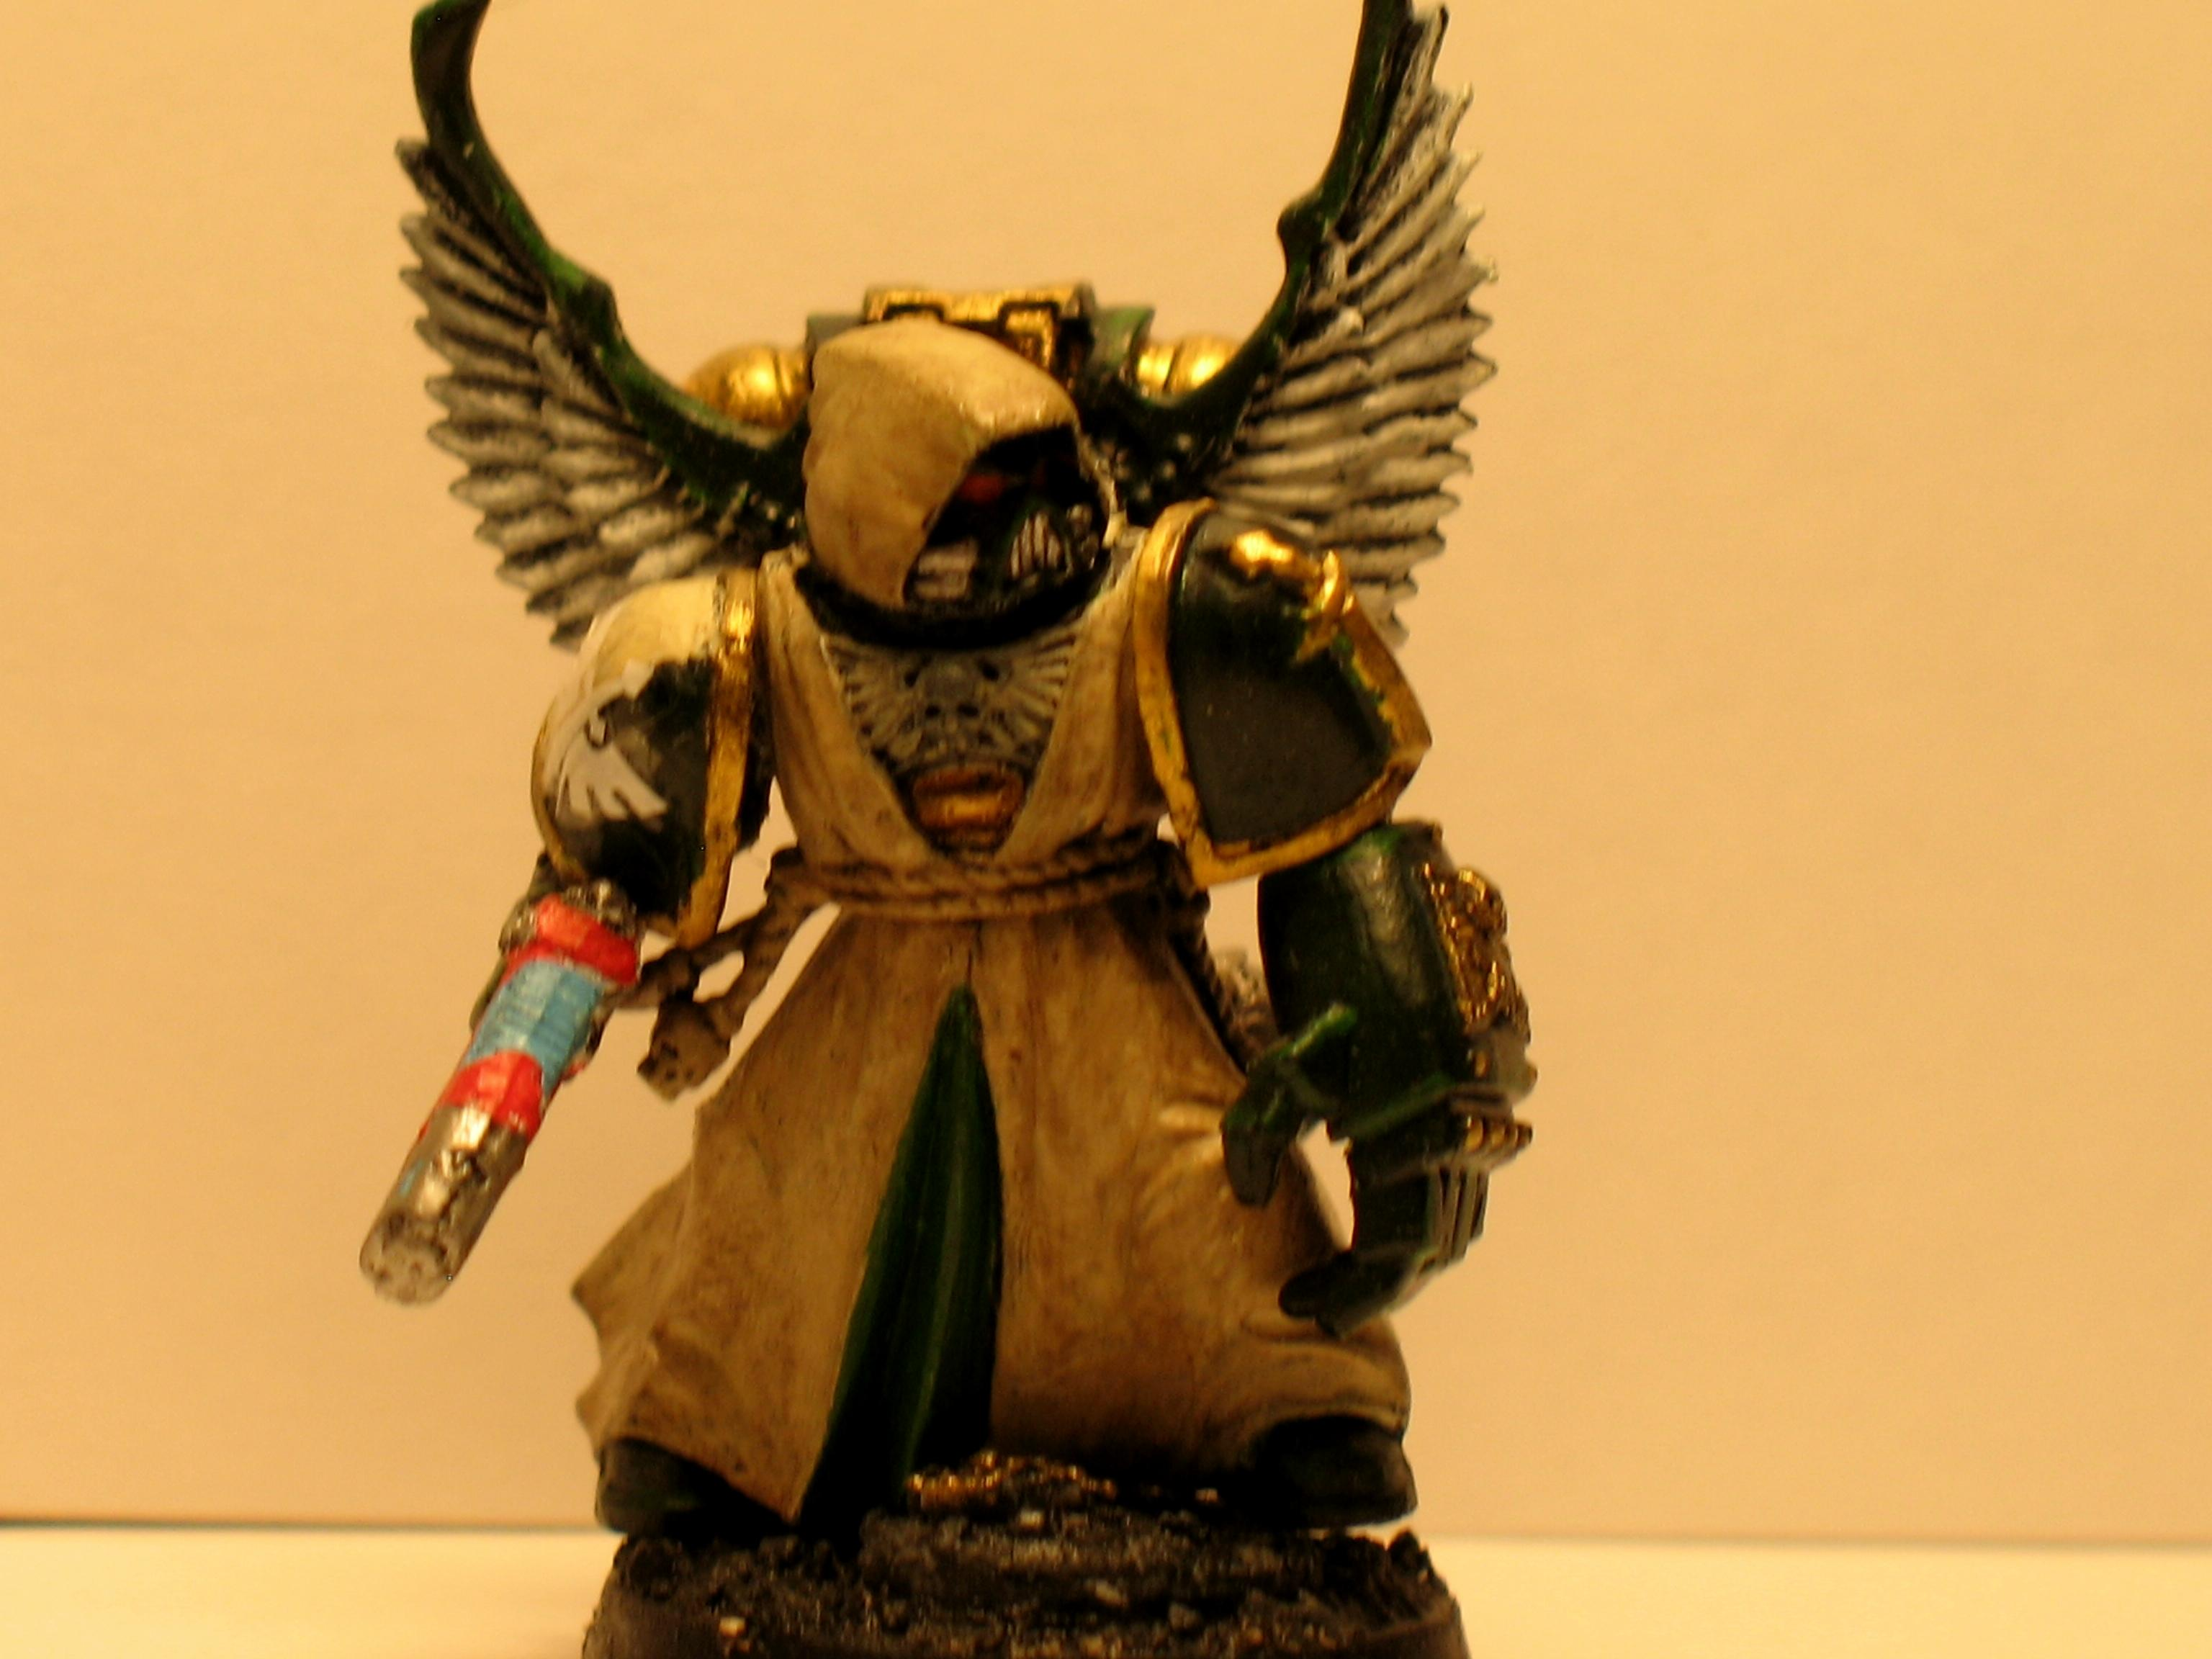 Command Squad Warhammer 40k, Conversion, Dark Angel Command Squad, Dark Angels, Warhammer 40,000